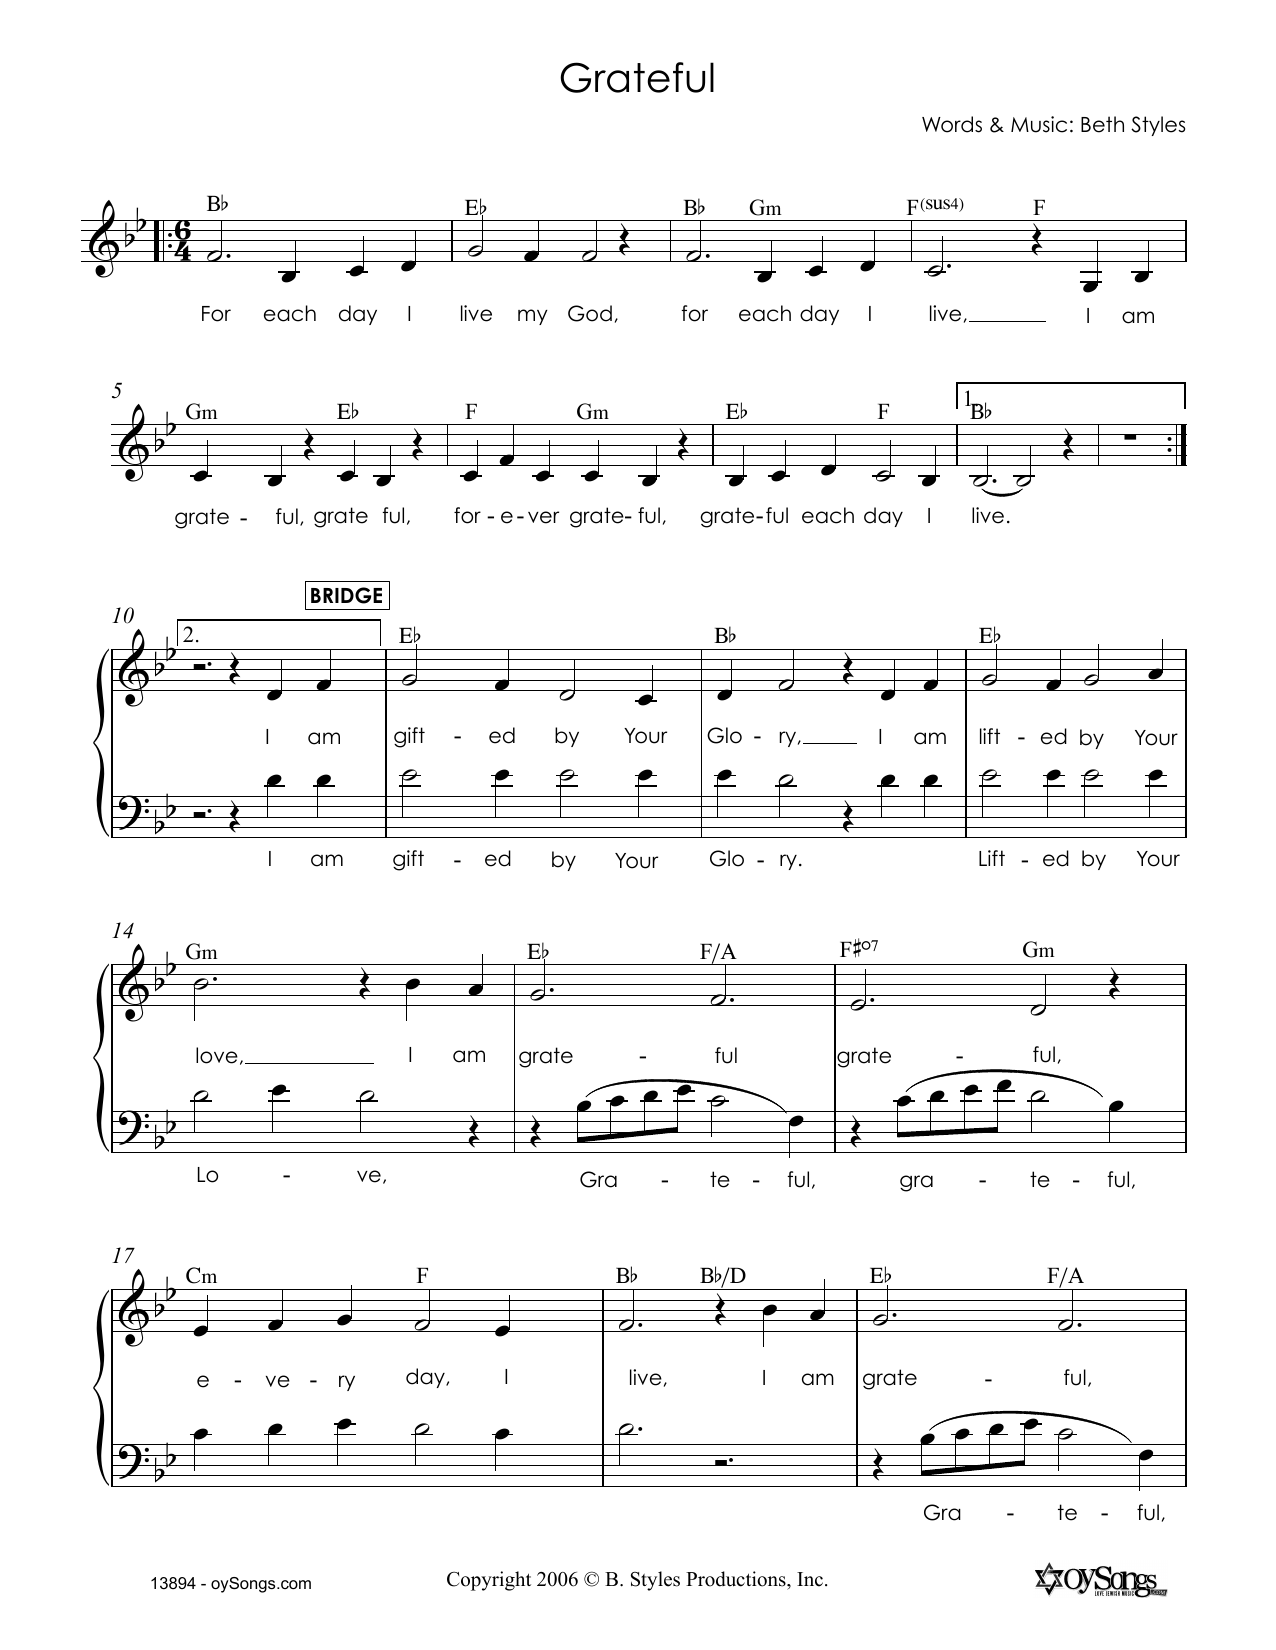 Beth Styles Grateful sheet music notes and chords. Download Printable PDF.